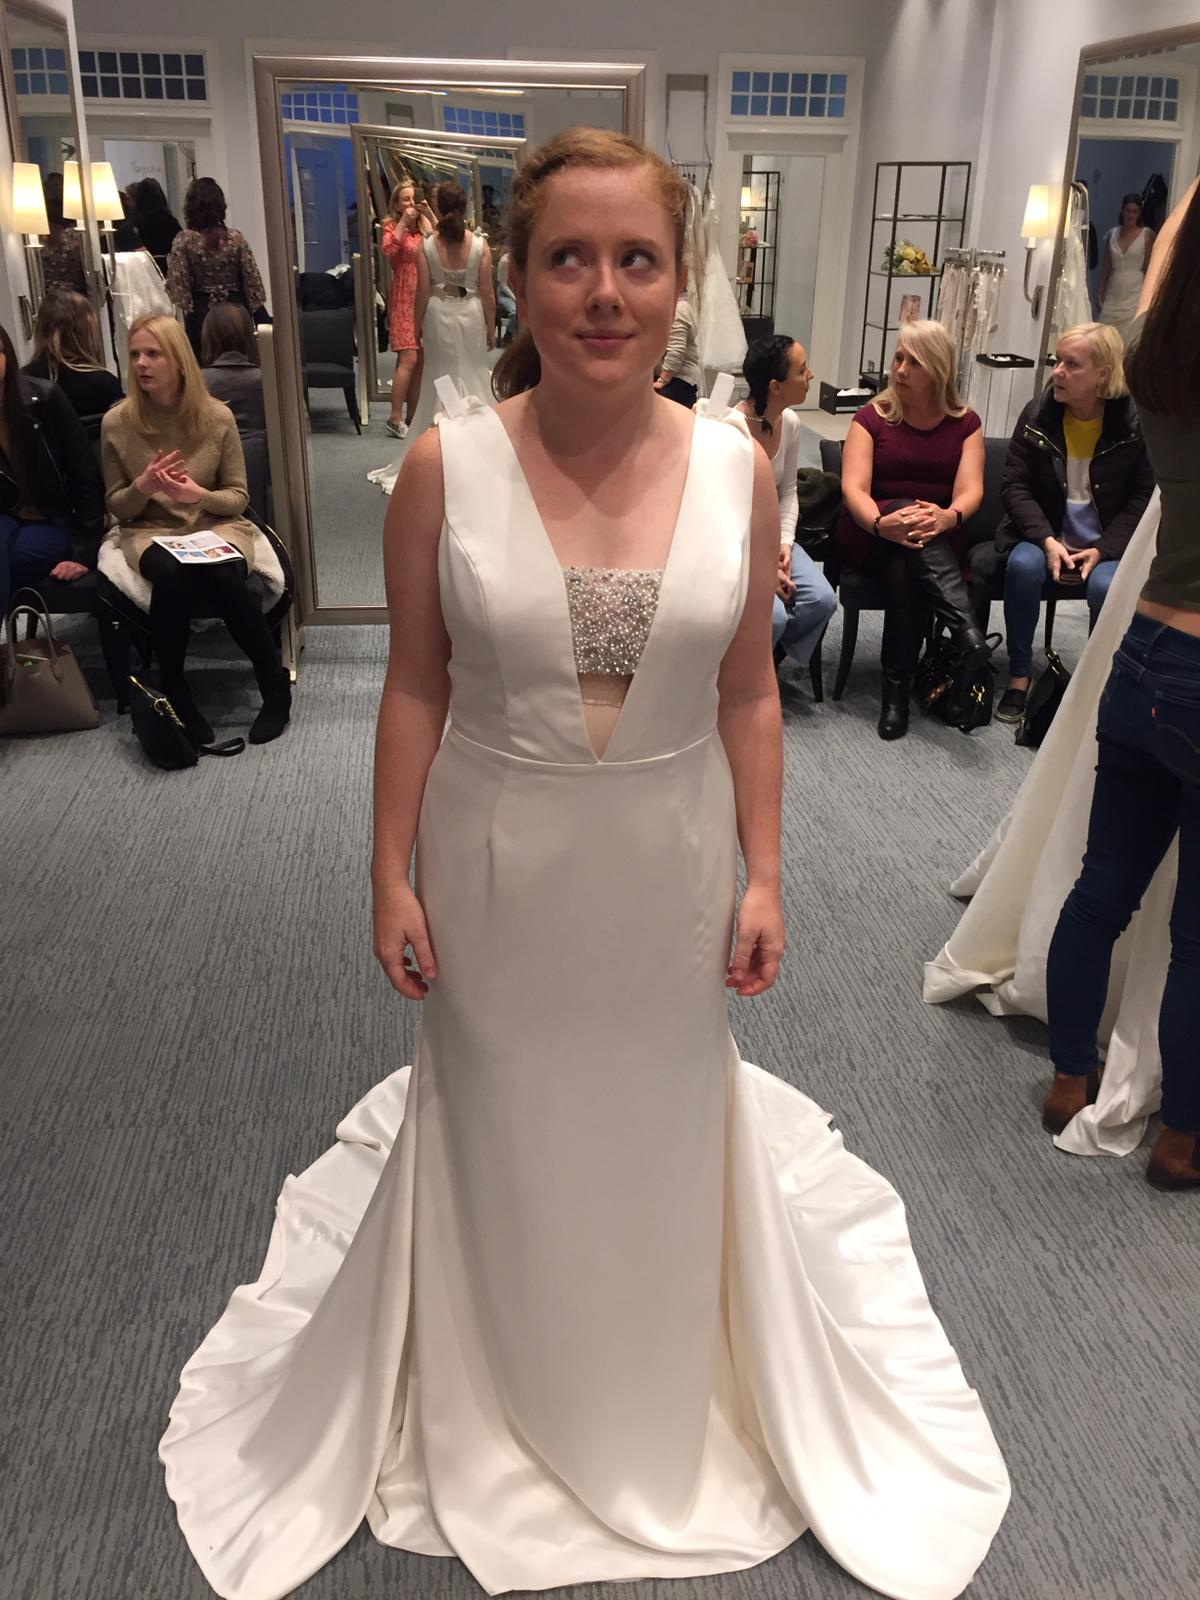 Buying My Wedding Dress At David's Bridal - A Pretty Place to Play, London Running and Fitness Blog